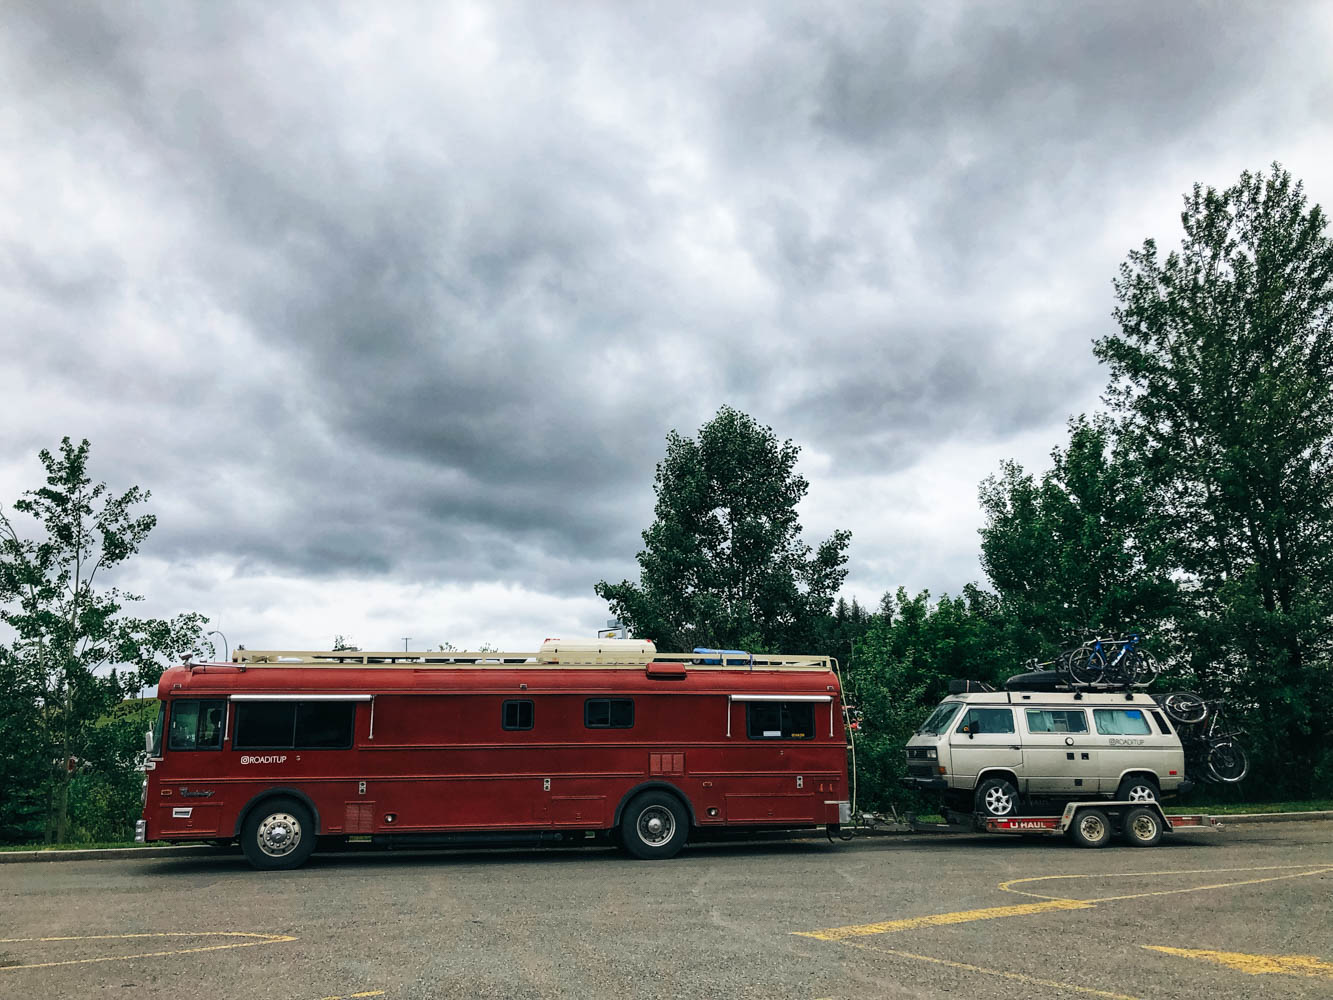 Leaving Burns Lake pulling our broken Westy on a U-Haul platform, still unsure where we will be able to get it fixed and even less when…